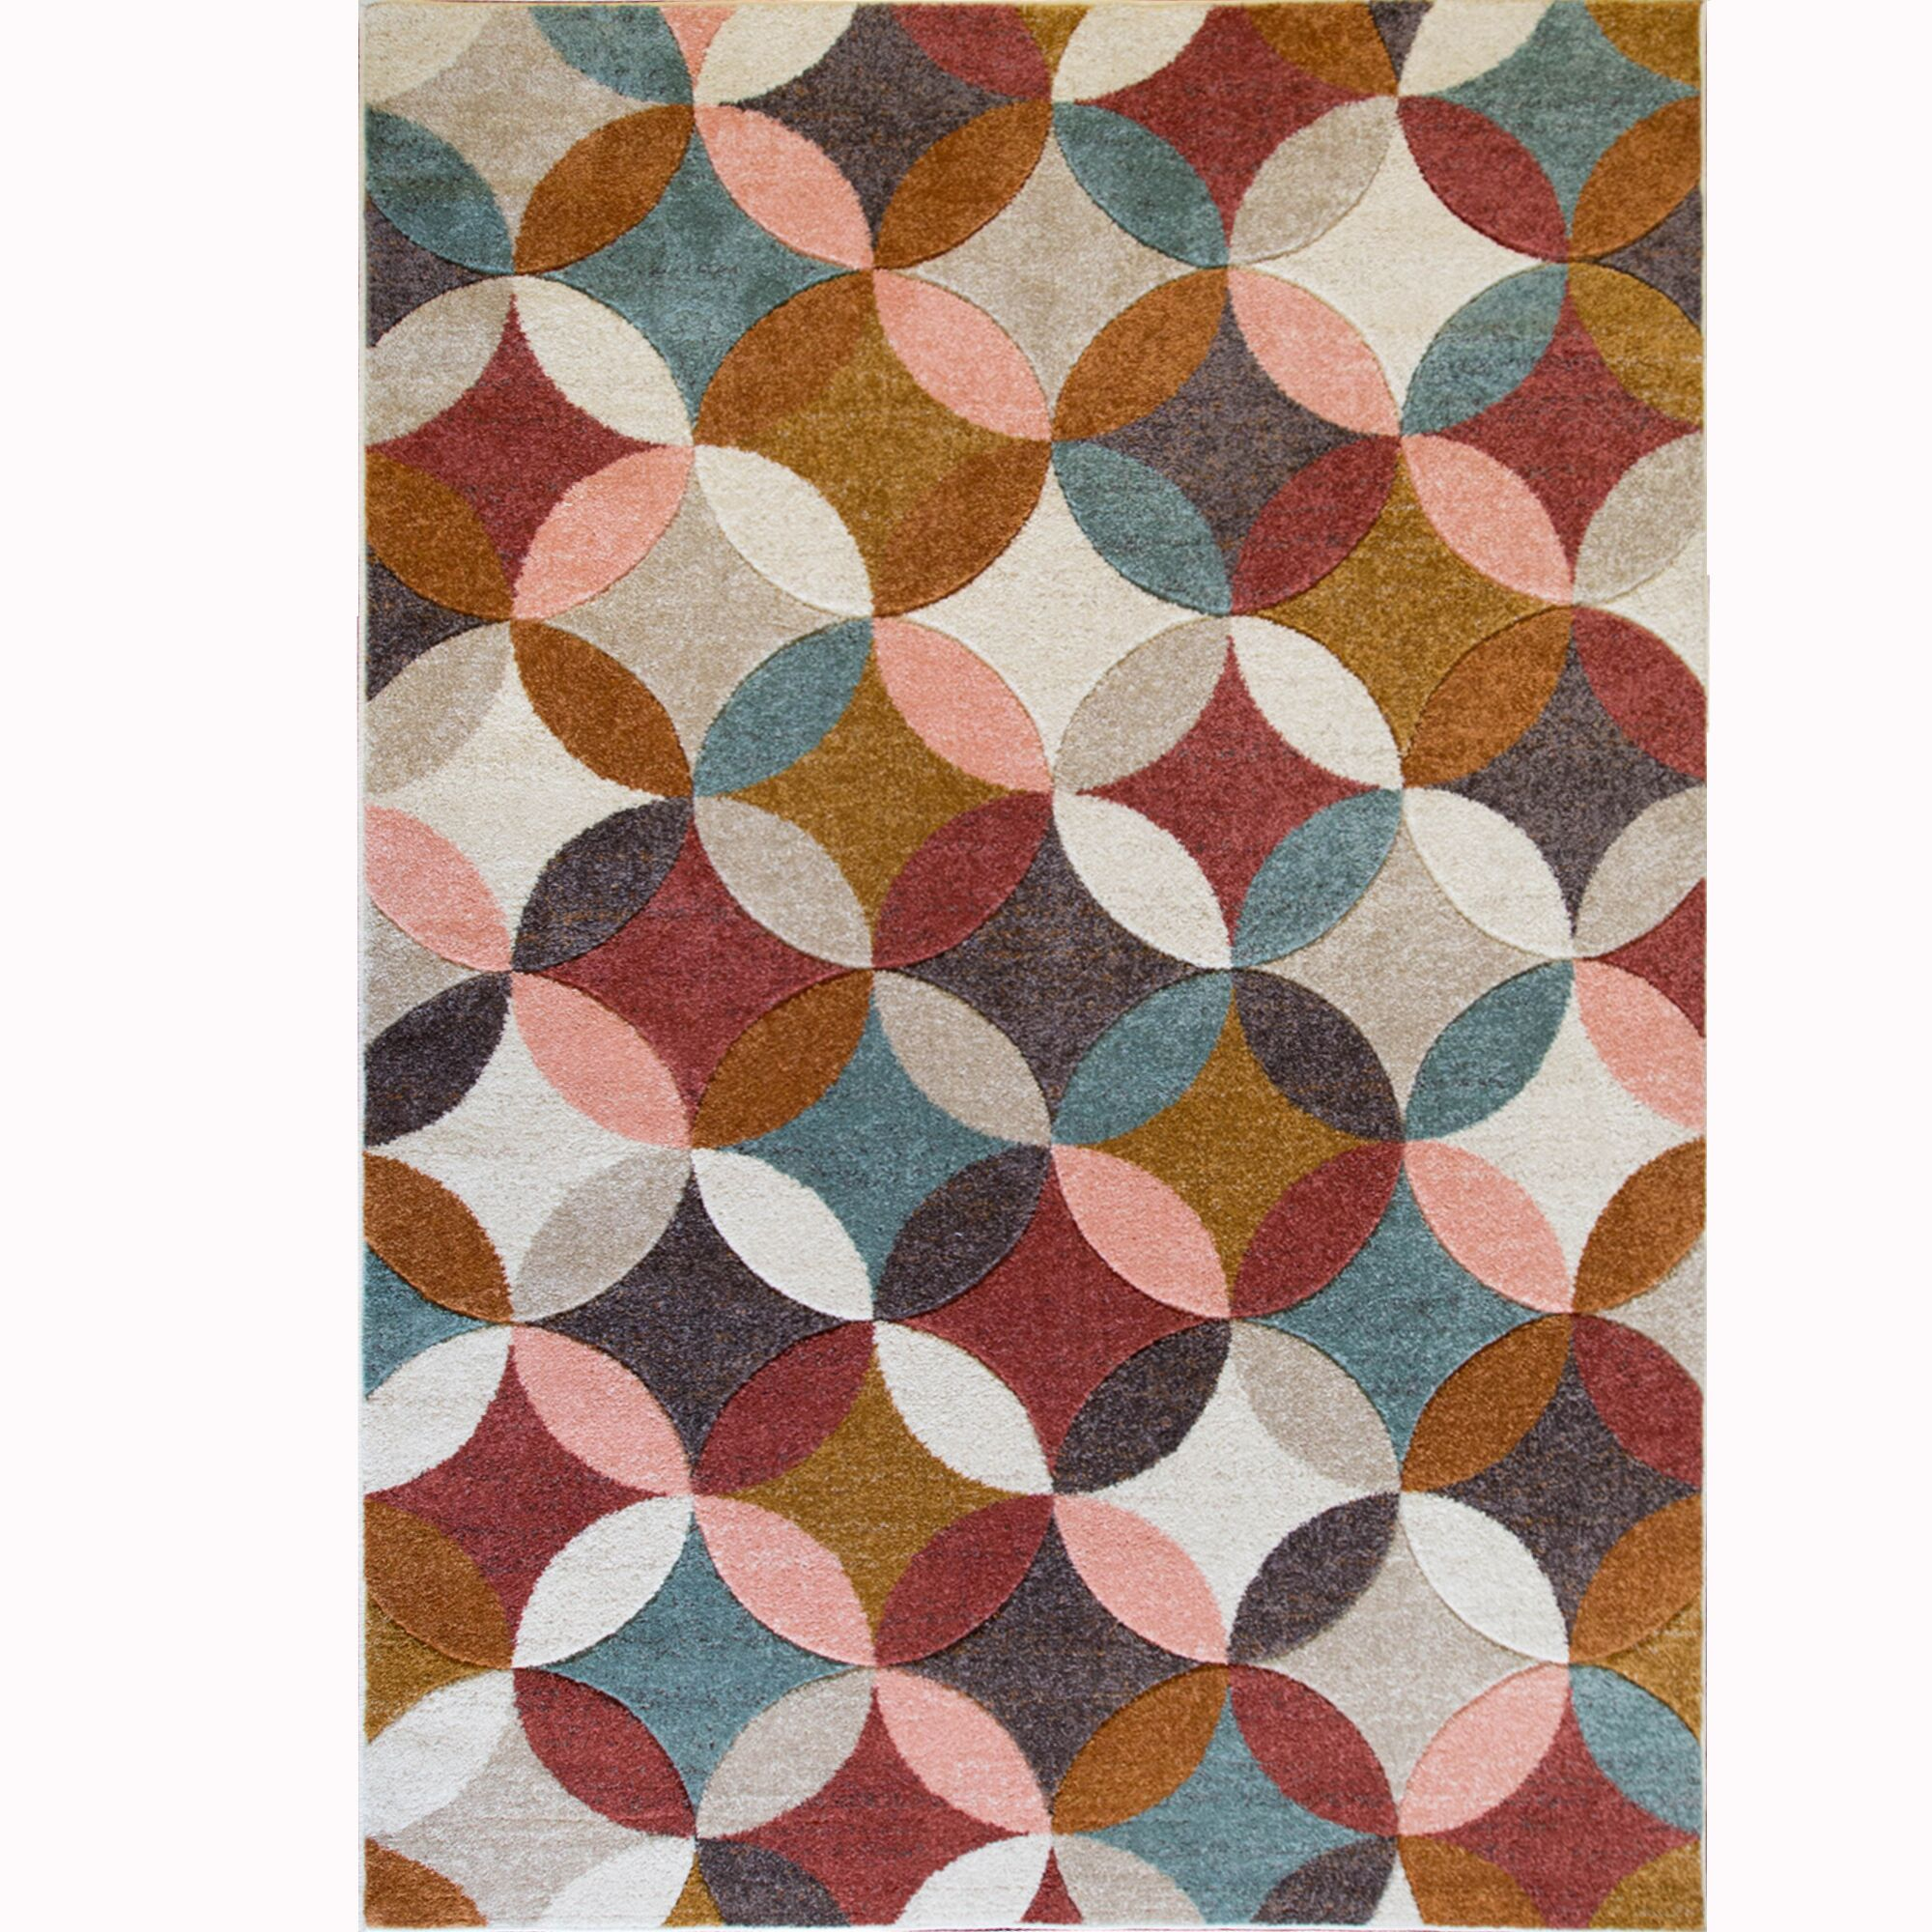 Dufresne Brown Area Rug Rug Size: 7'10